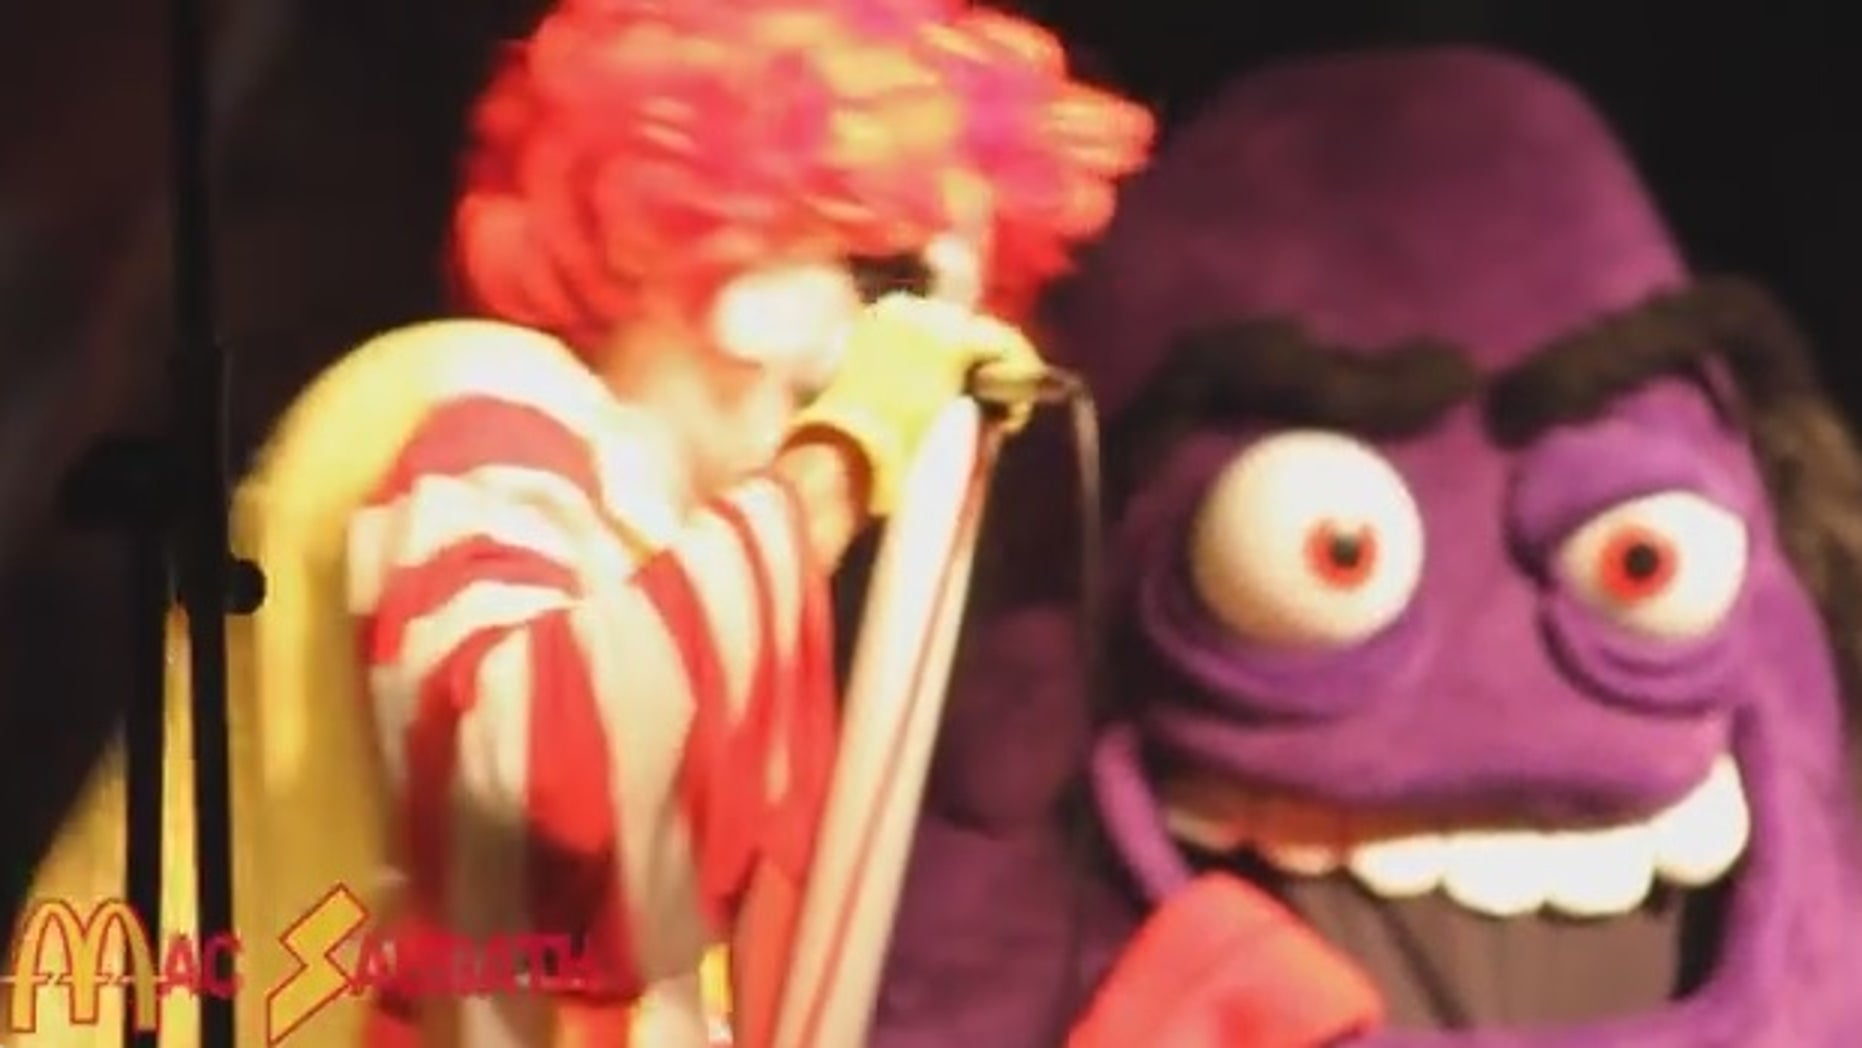 Mac Sabbath does cover songs from the heavy metal band Black Sabbath, but with a fast food twist.